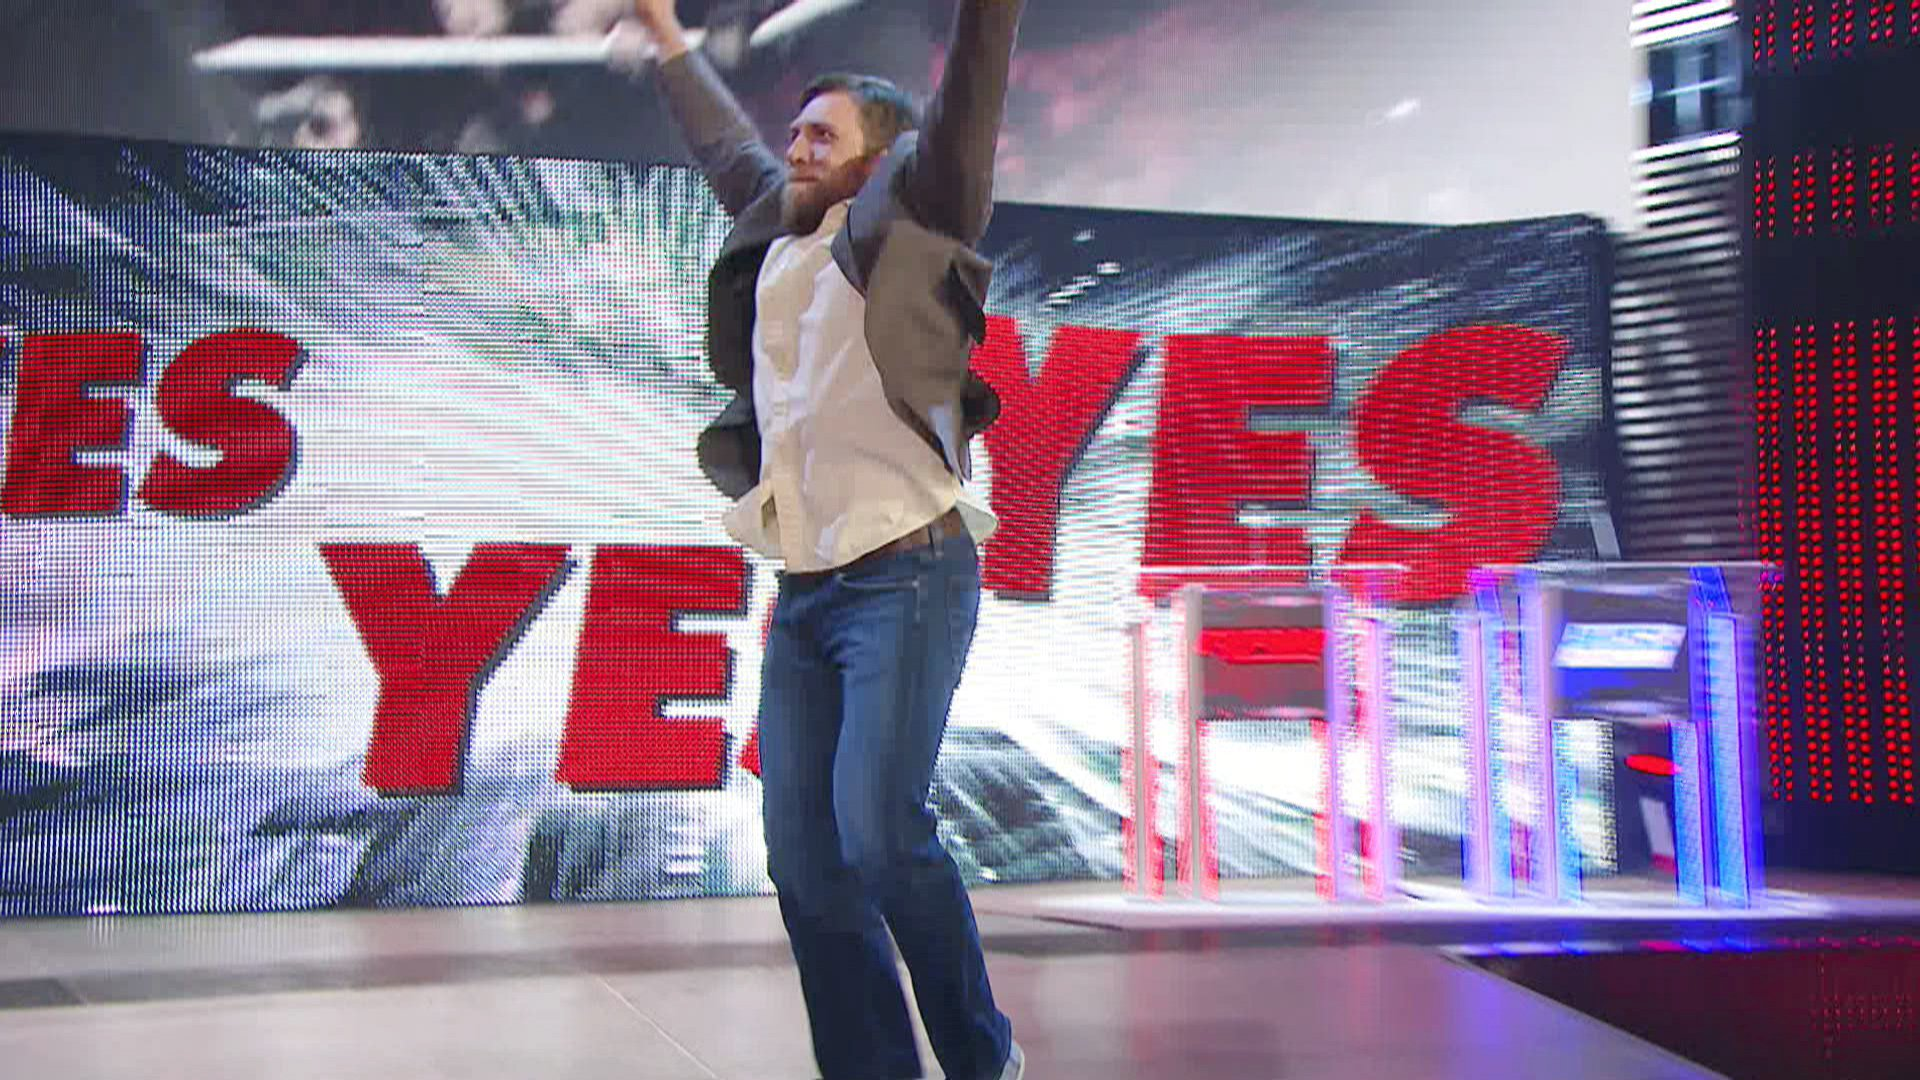 Daniel Bryan is revealed as the General Manager of SmackDown LIVE.